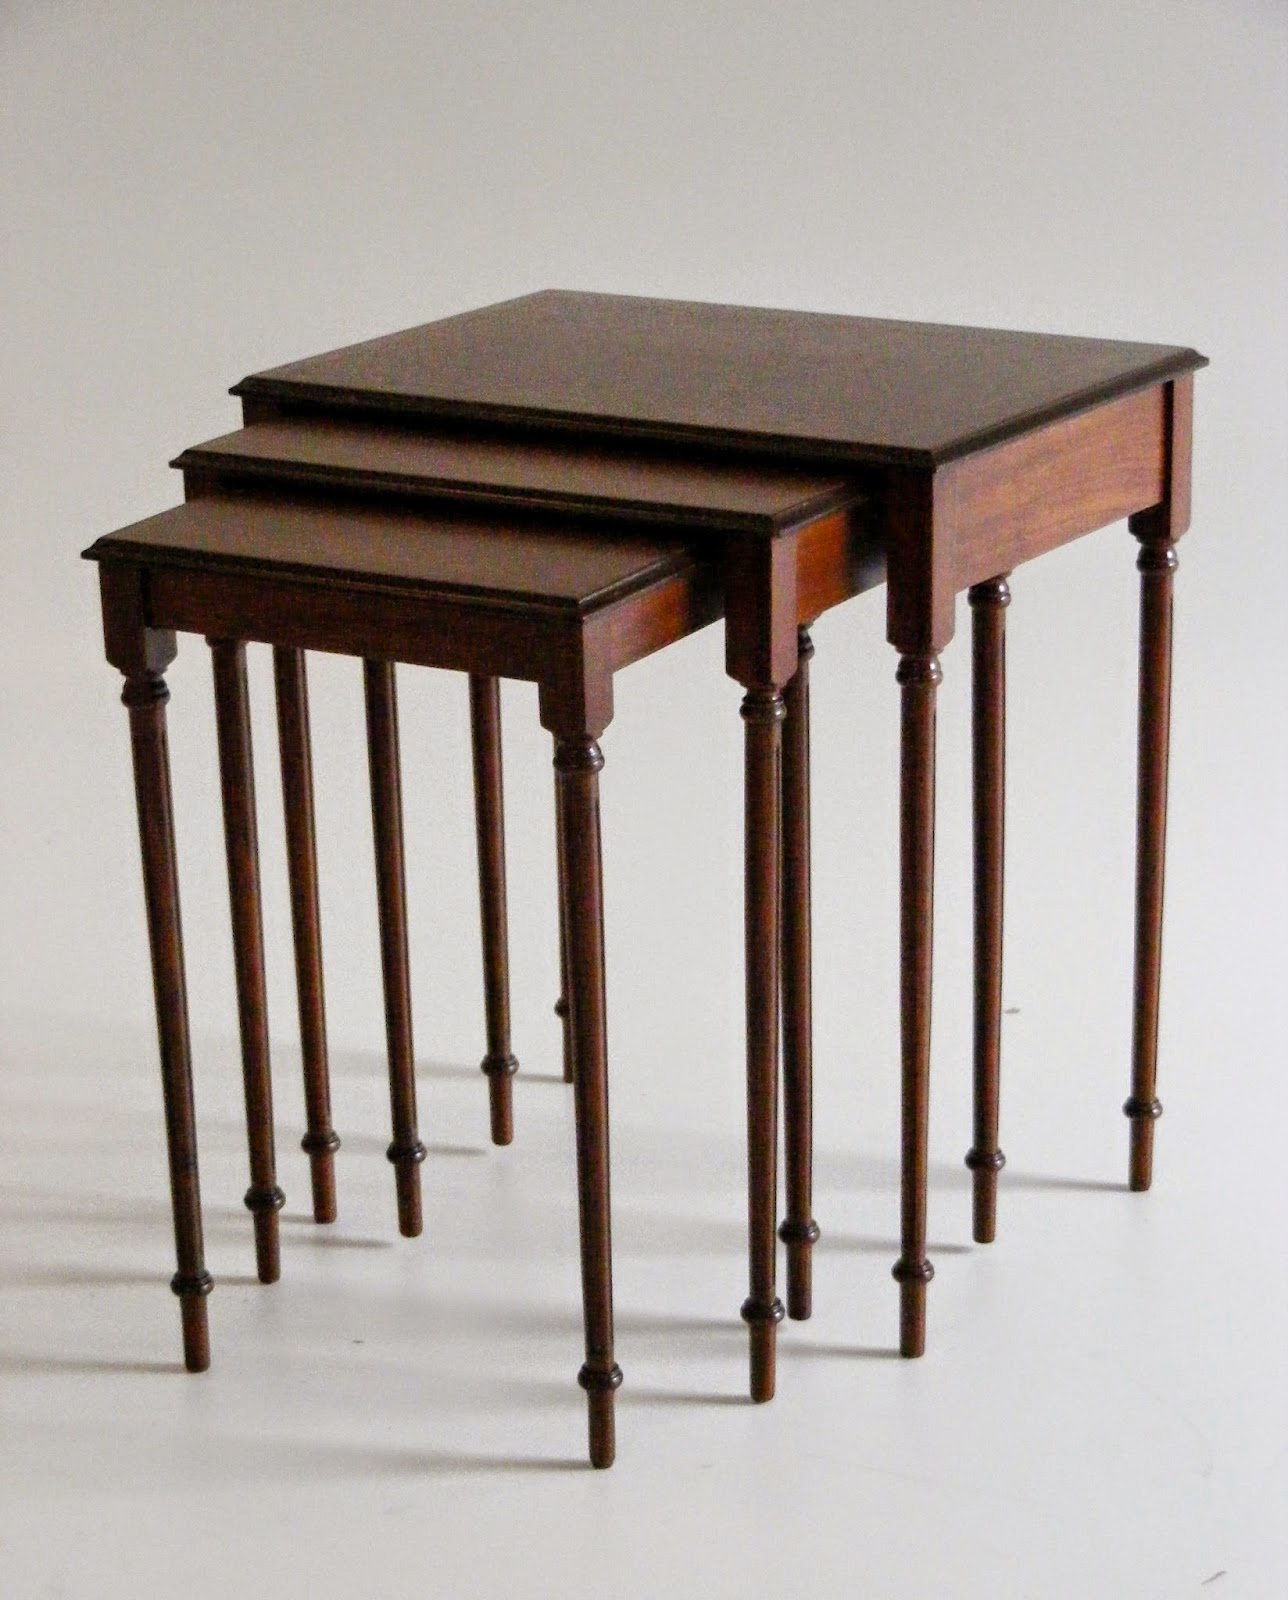 VintageGreaves and Thomas (England) solid wood nest of tables